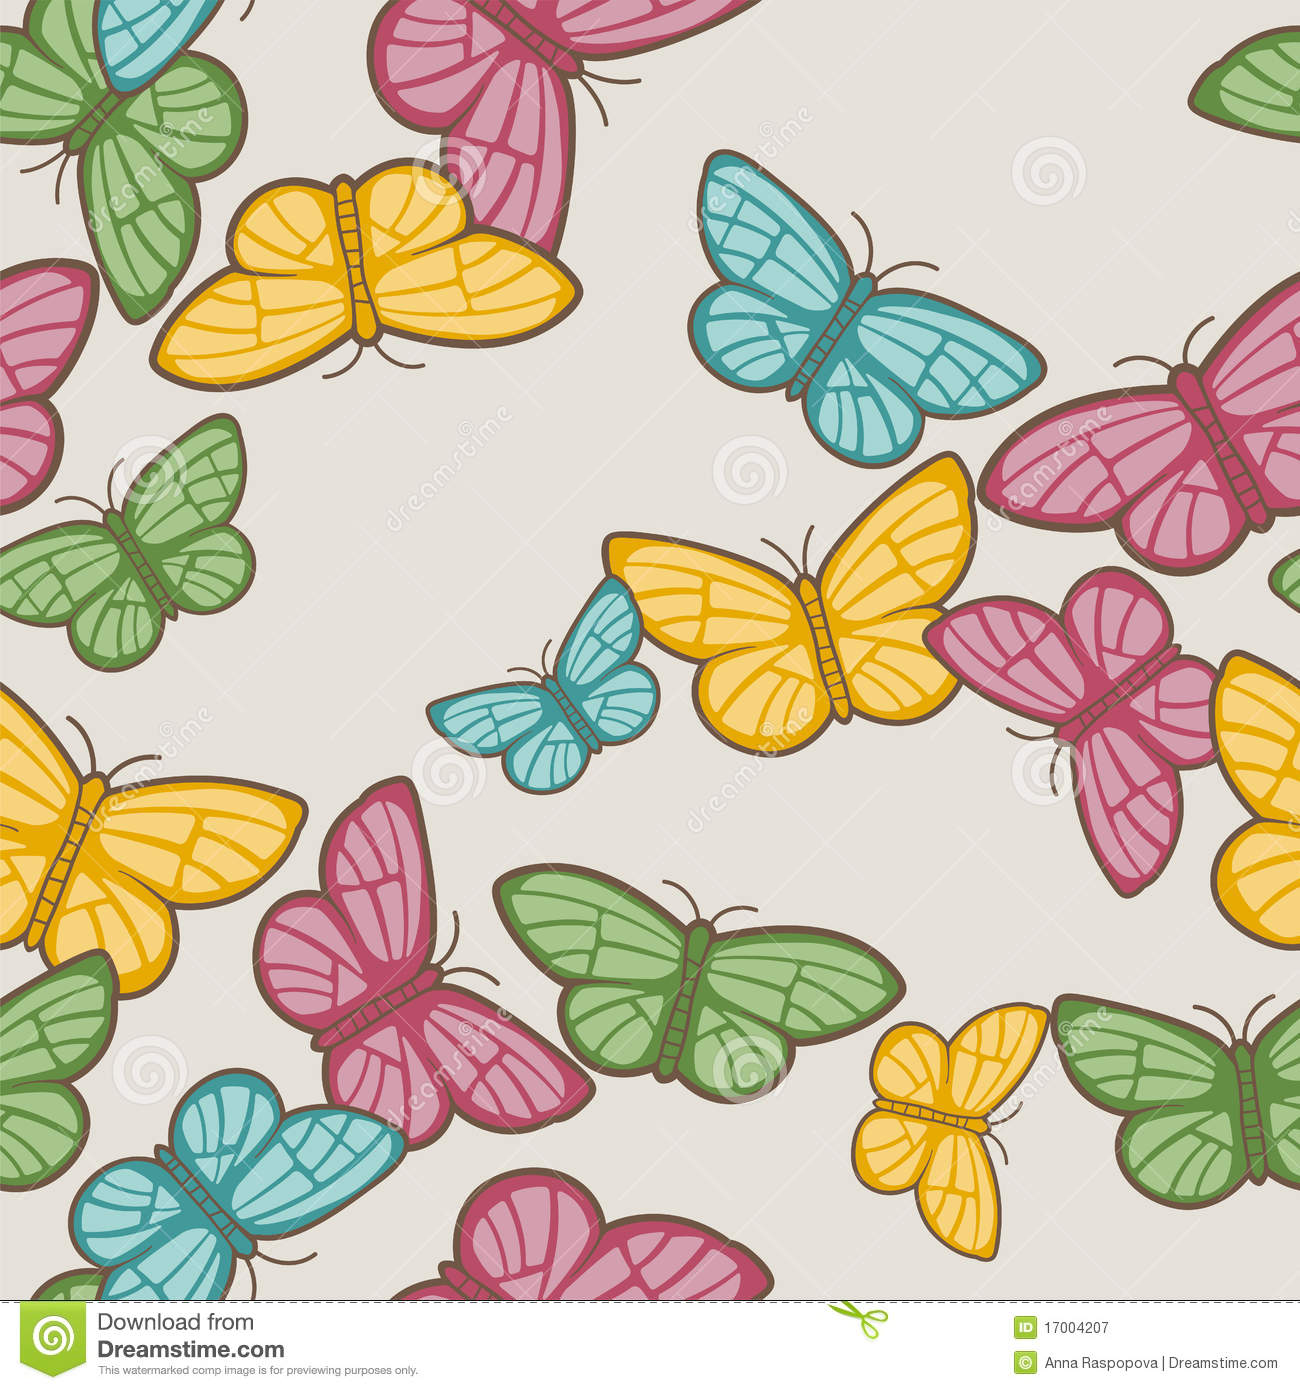 butterflies pattern royalty free stock photography image 17004207